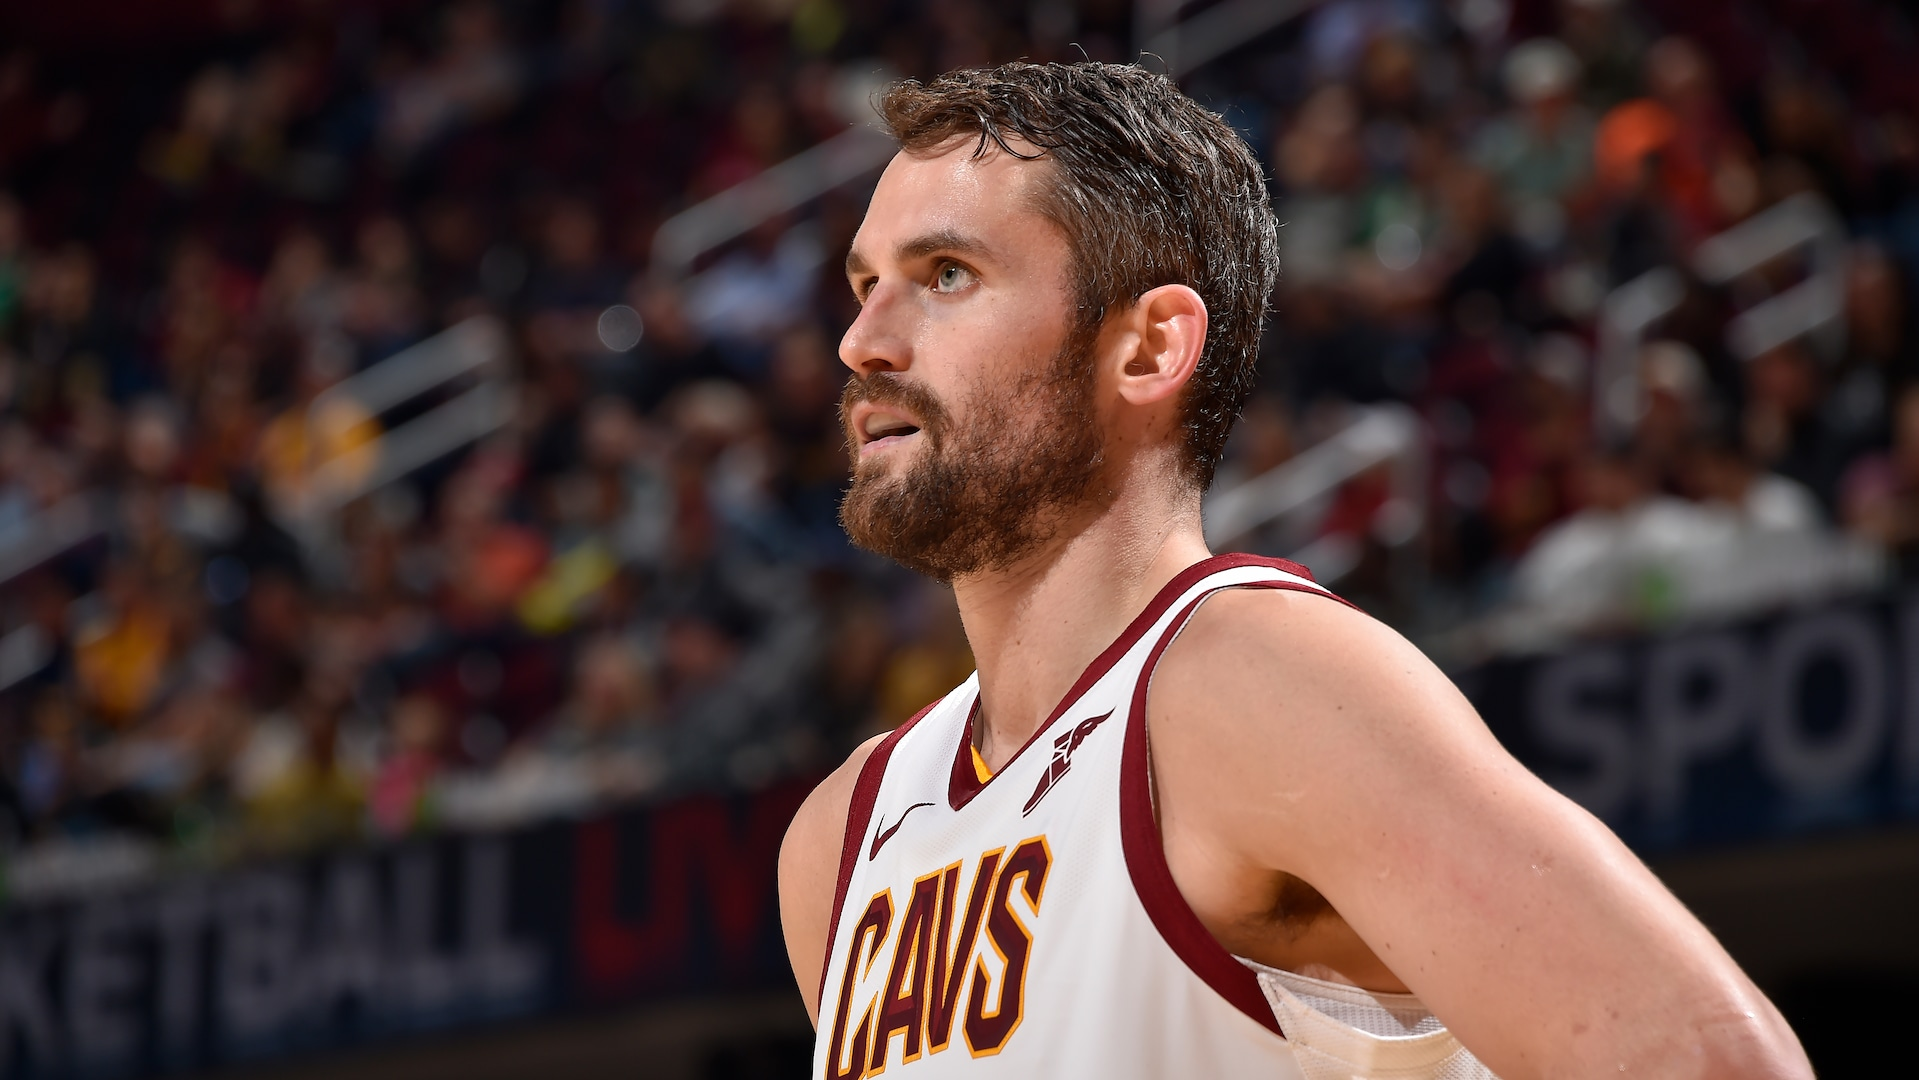 Report: Kevin Love directs shootaround outburst toward Cleveland Cavaliers general manager